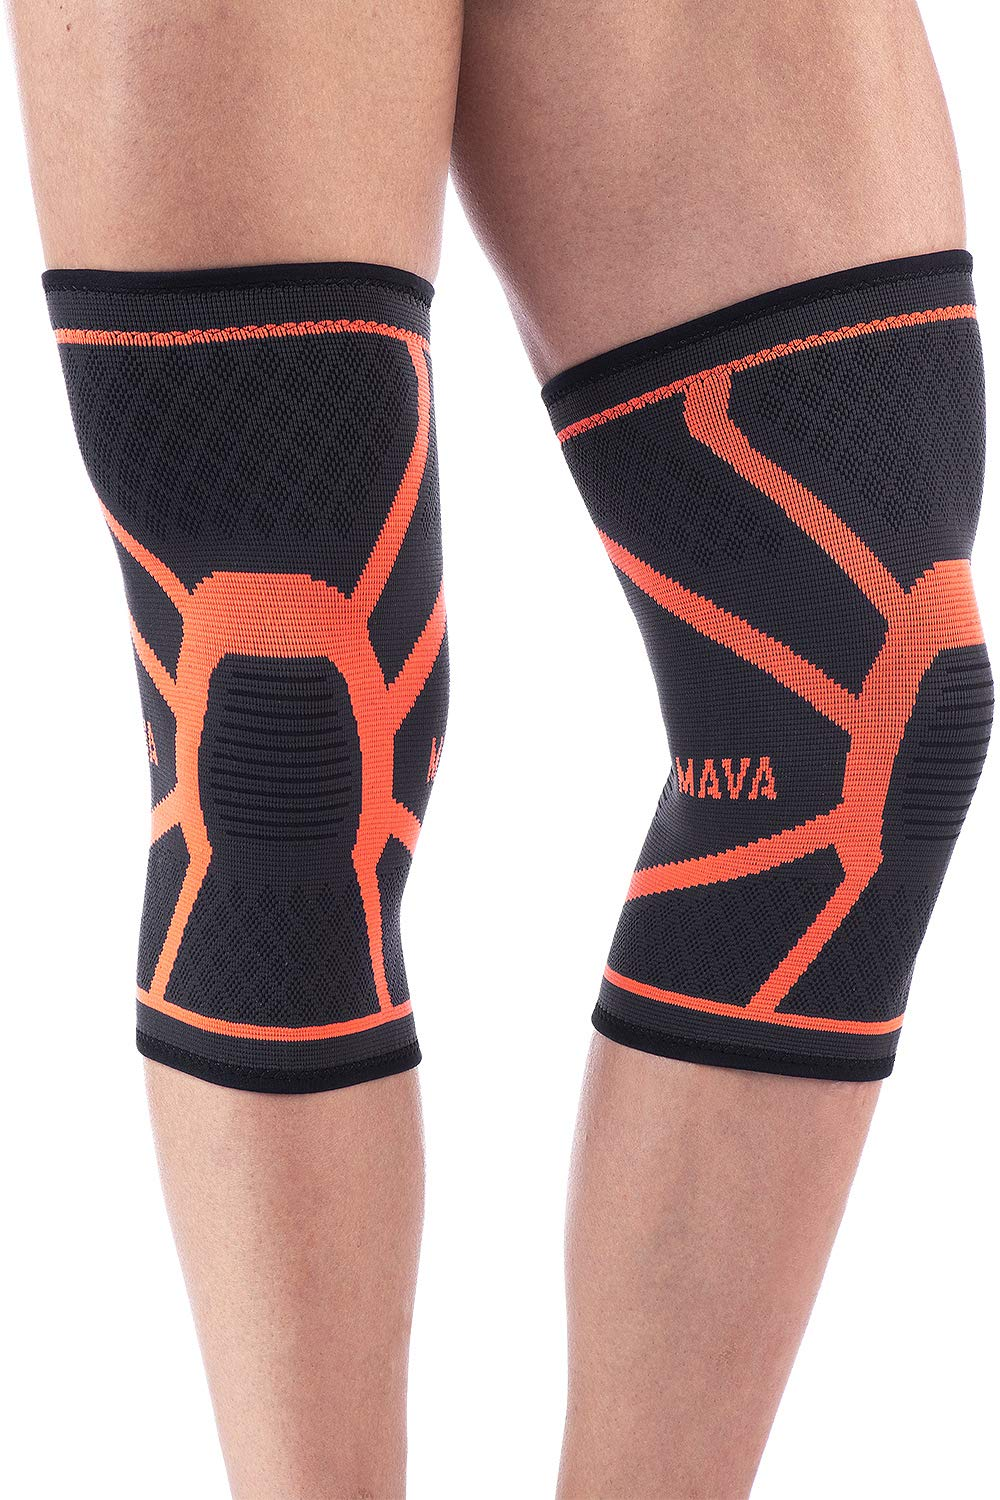 a5a06da95c Mava Sports Knee Compression Sleeve Support (Pair) for Joint Pain & Arthritis  Relief, Injury Recovery, Improved Circulation - Breathable (Black & Orange,  ...